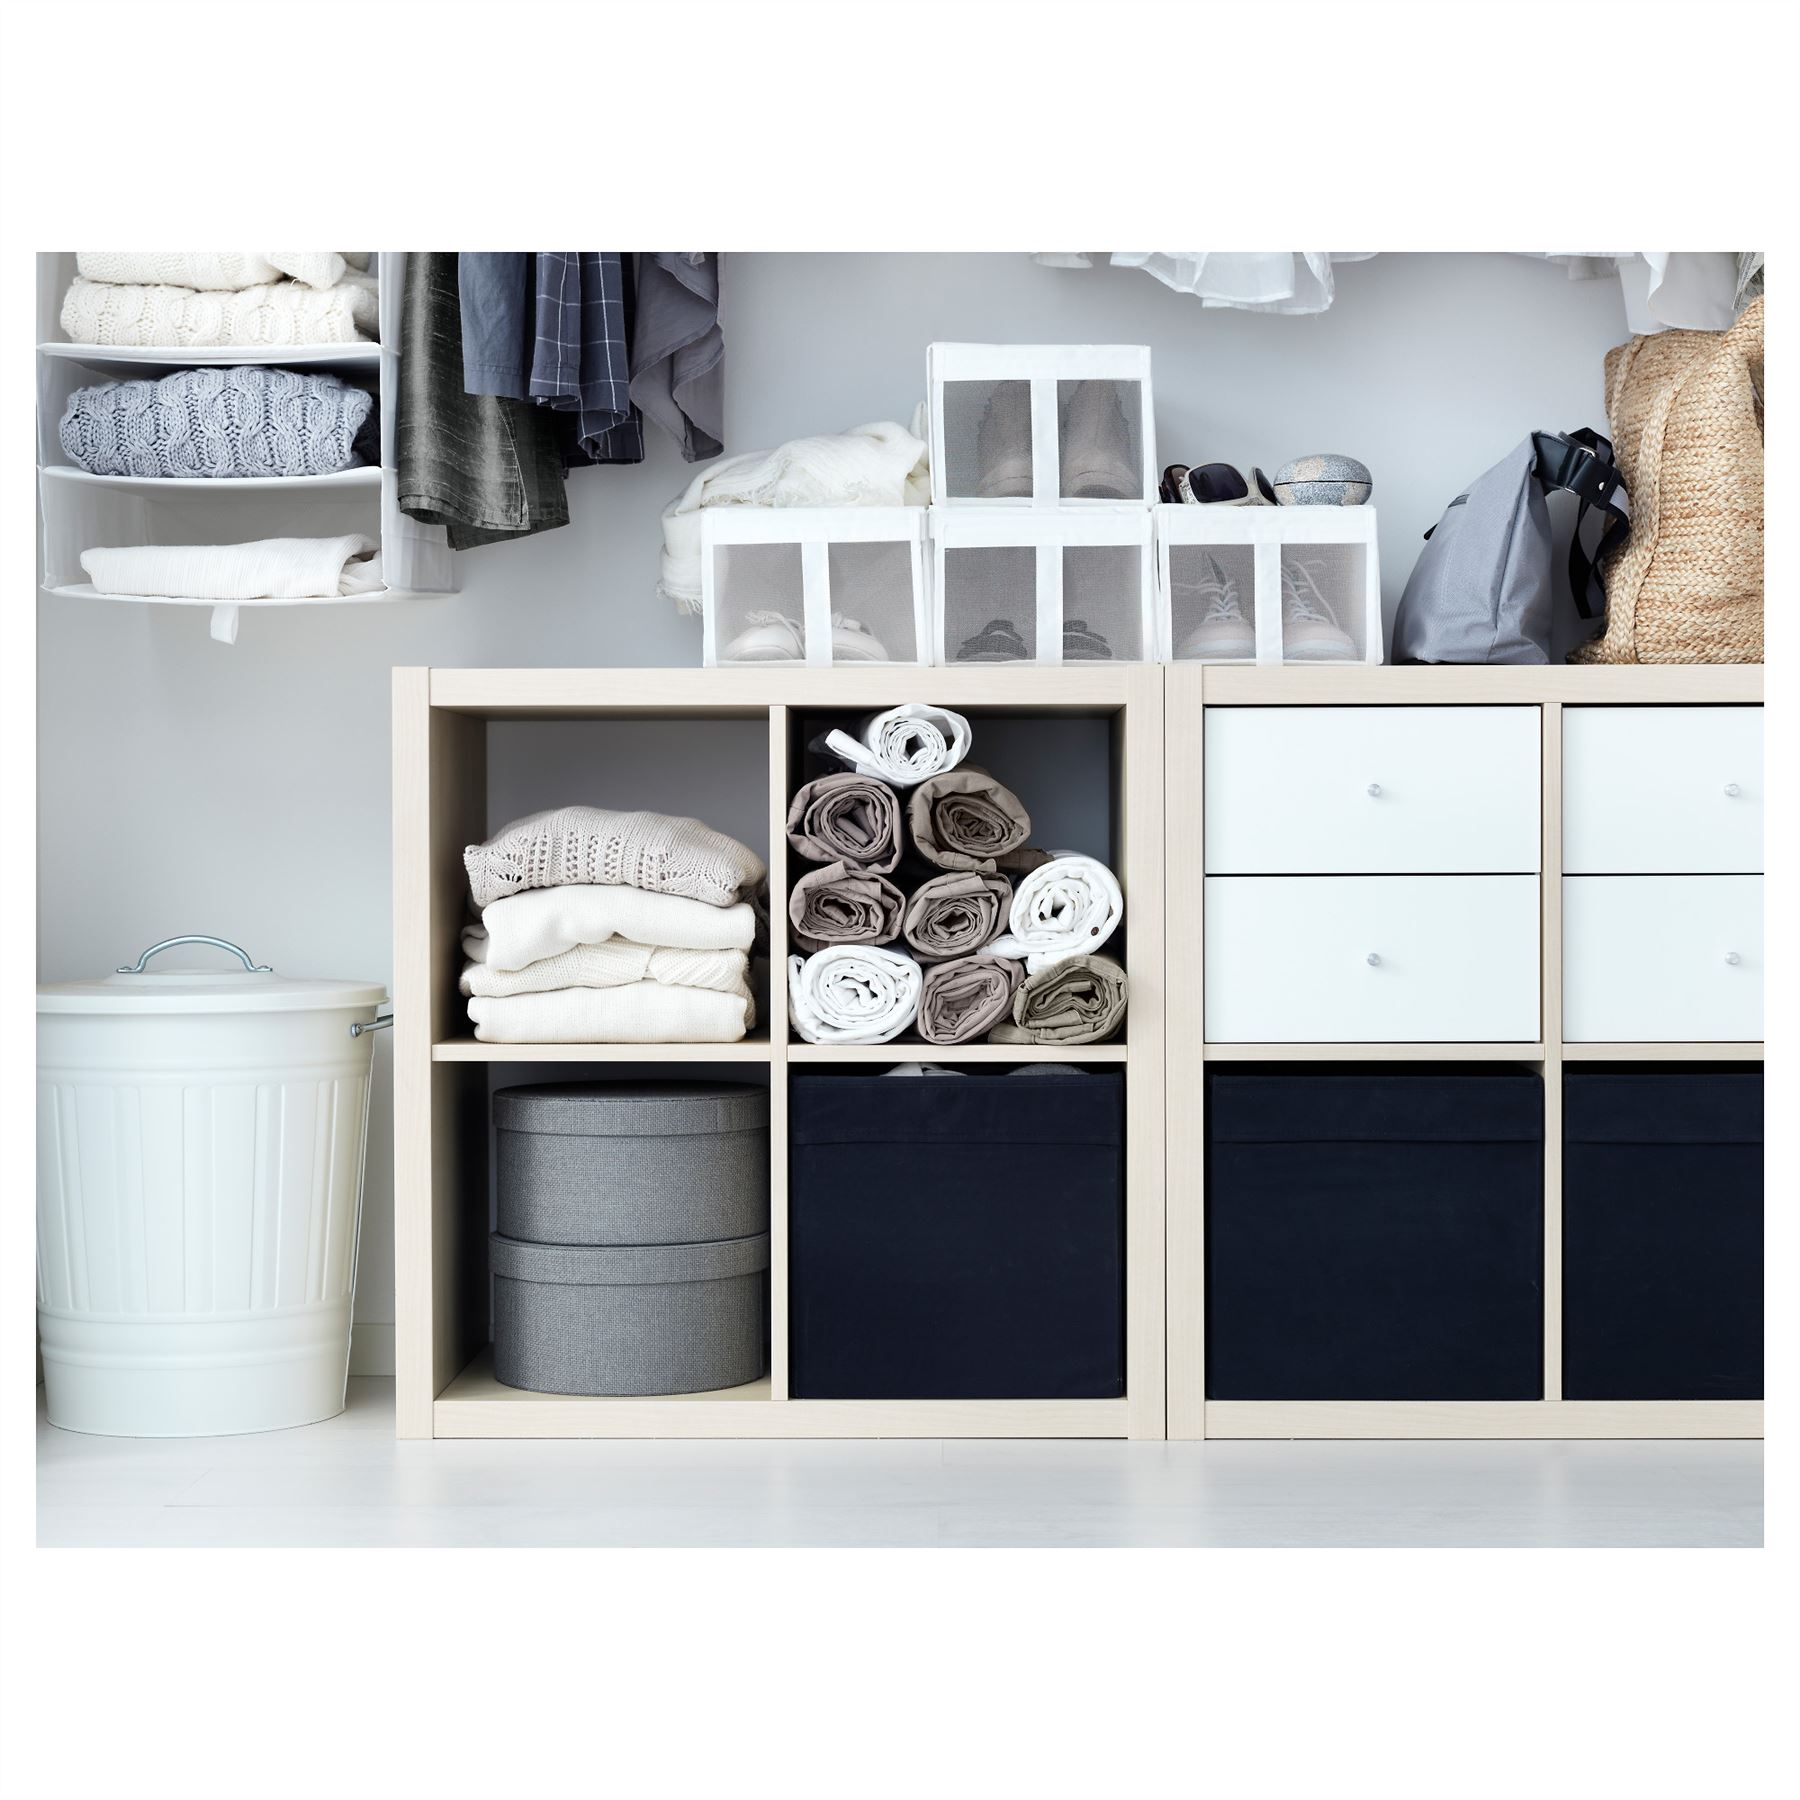 Ikea Closet Systems Walk In. Ikea Closet Systems Walk In | Storage Units